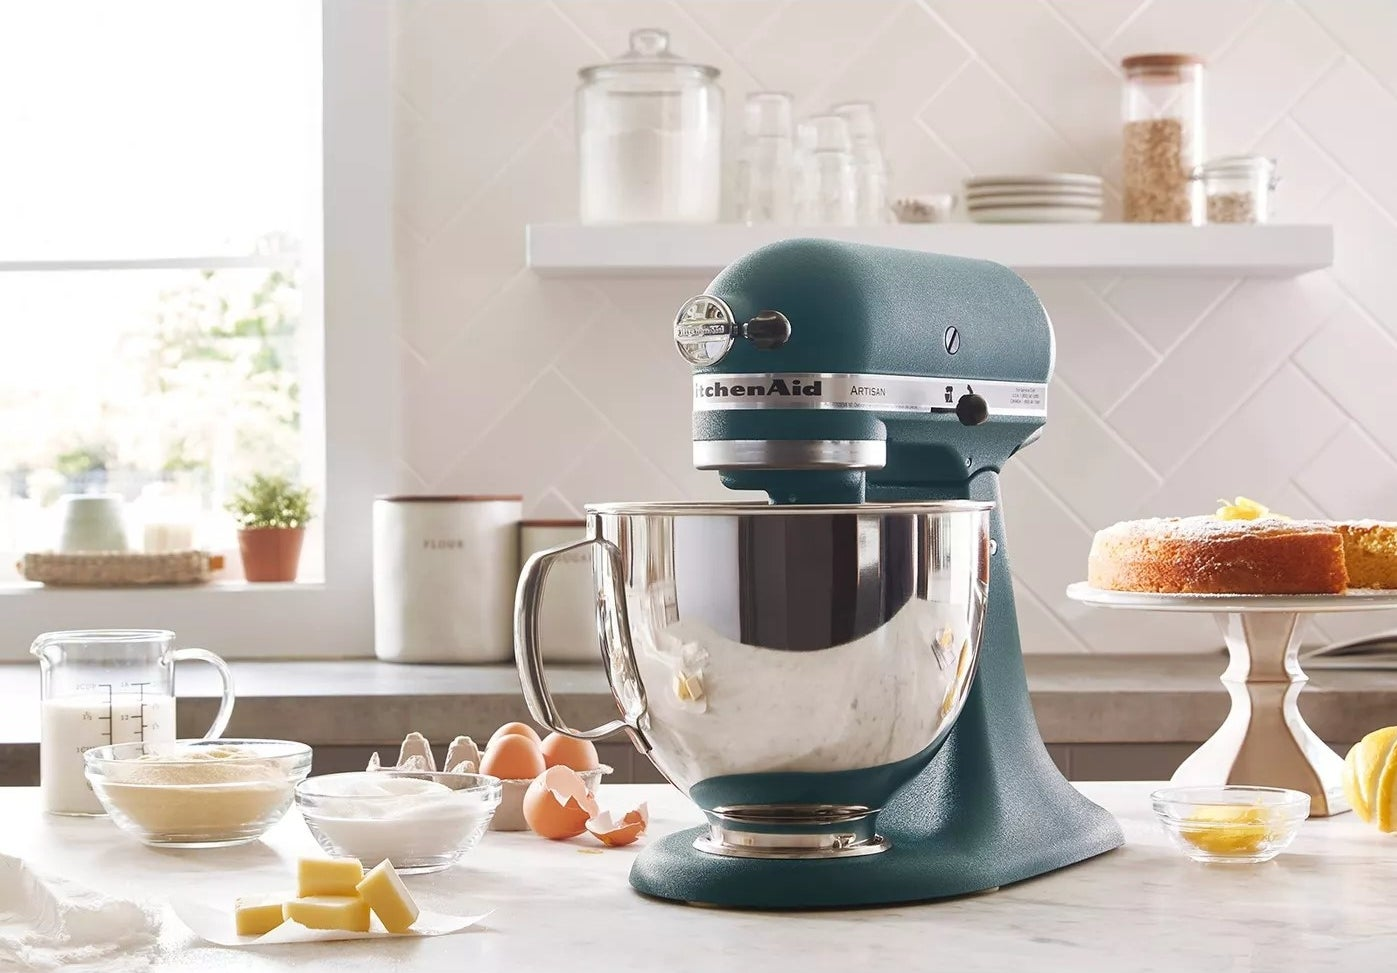 The pebbled hunter green stand mixer on a kitchen counter mixing dough